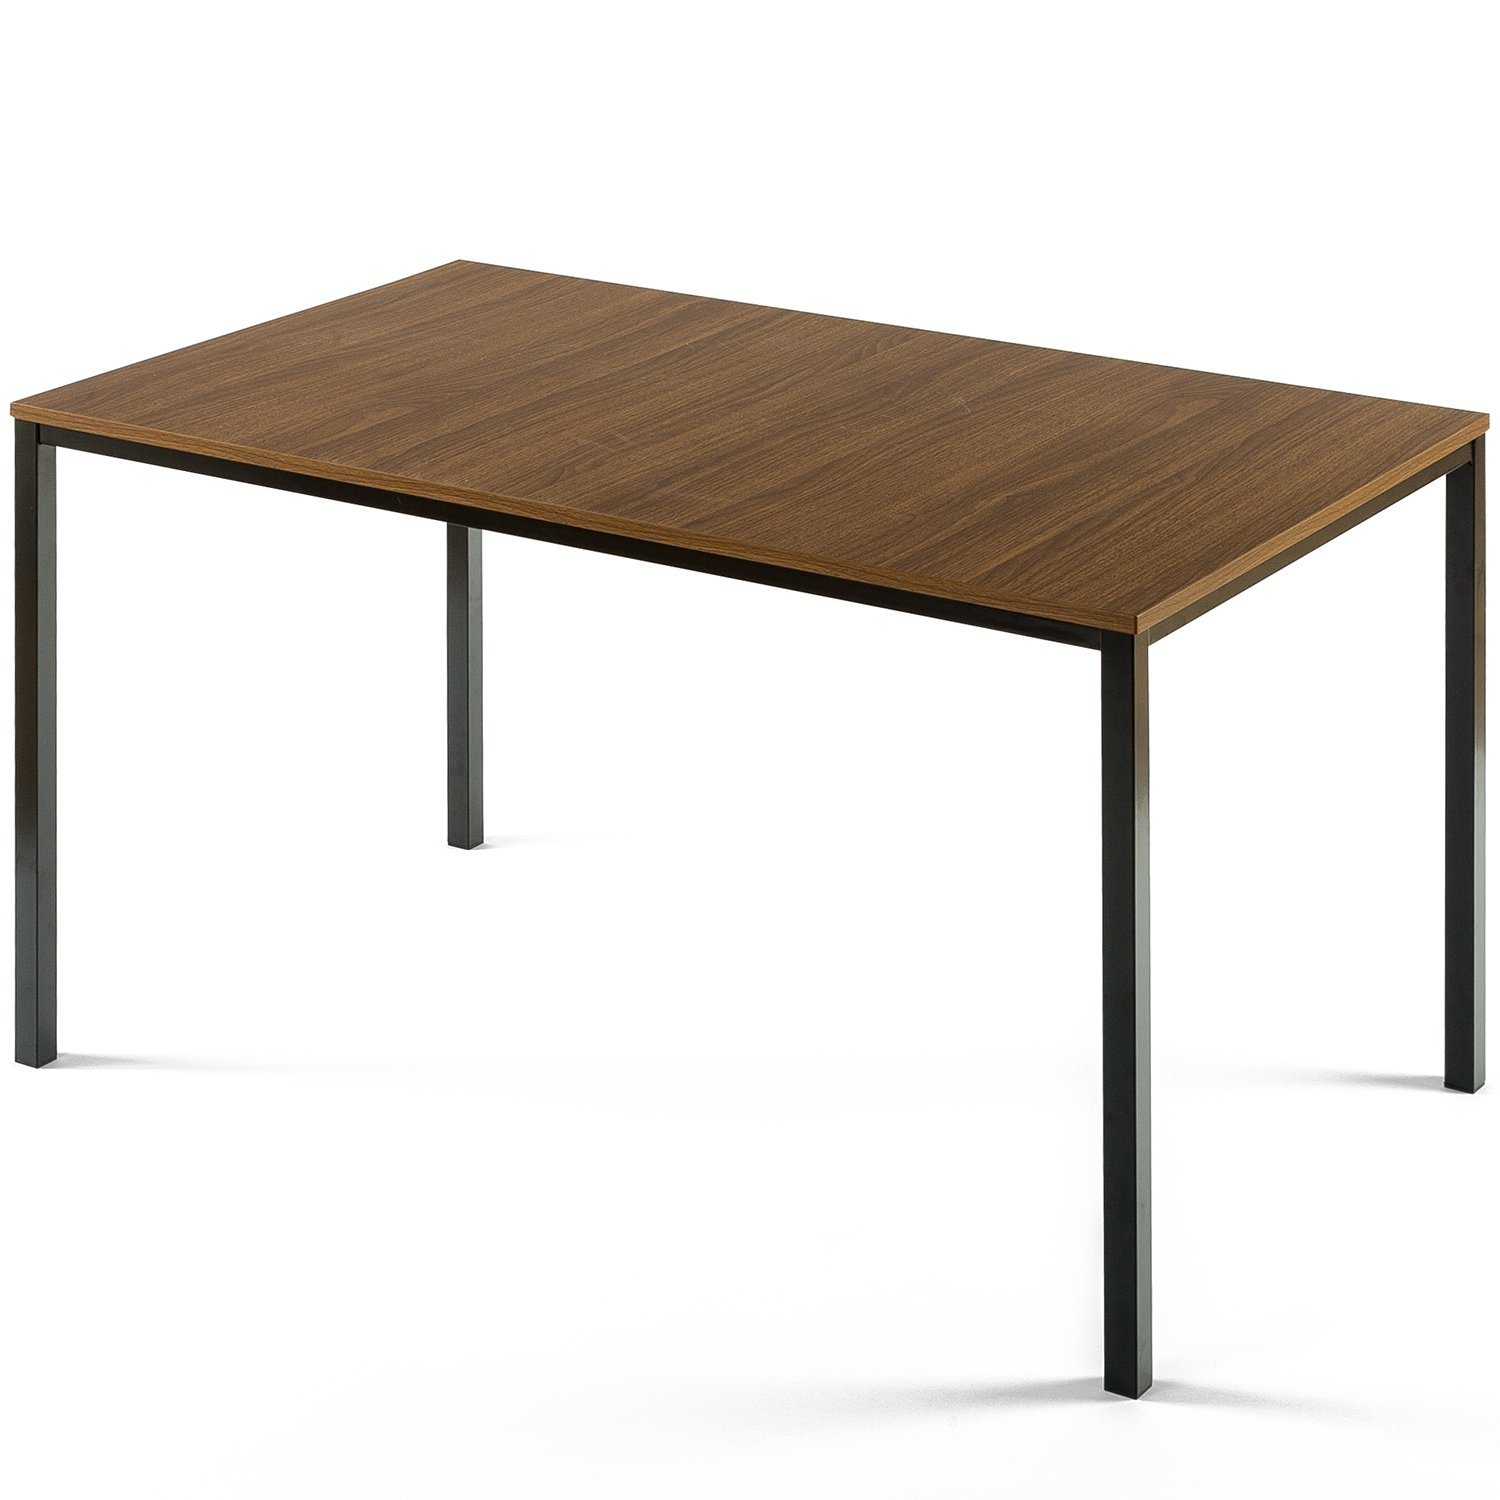 Zinus Dessa Modern Studio Collection Soho Dining Table / Office Desk / Computer Desk / Table Only, Brown by Zinus